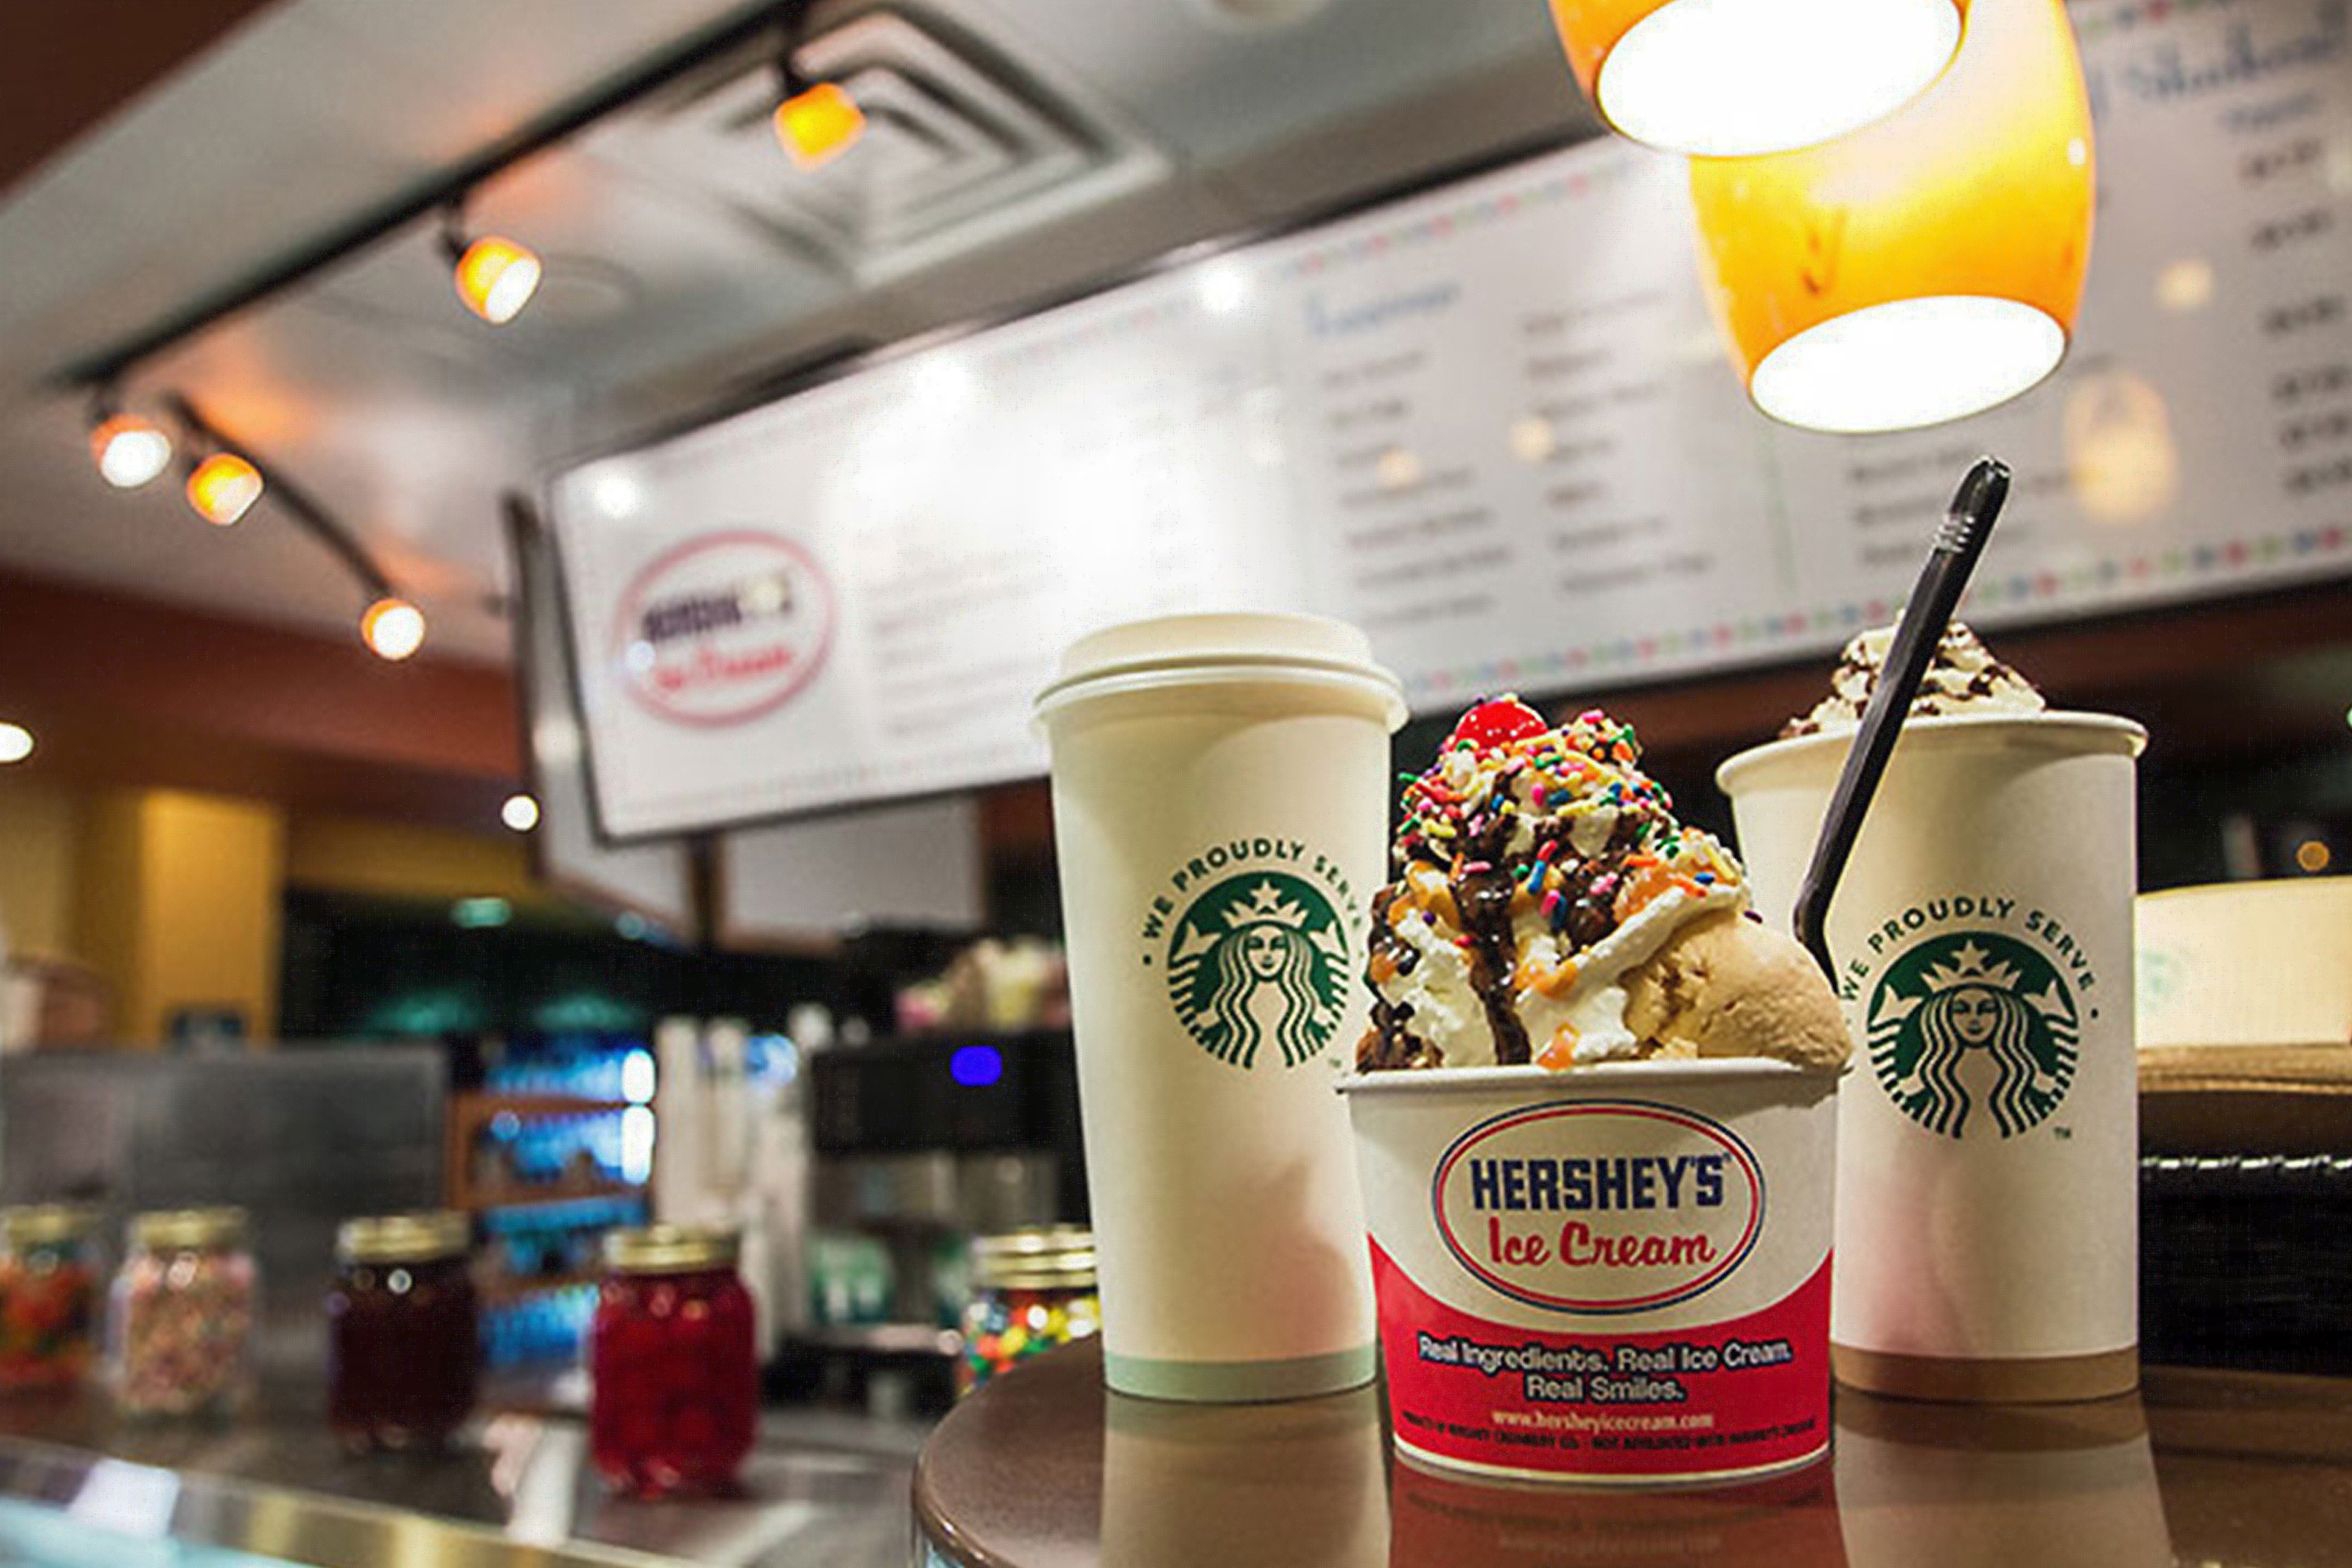 Hershey's Ice Cream Shop at one of our resorts in Kissimmee FL | Westgate Vacation Villas Resort & Spa | Westgate Resorts